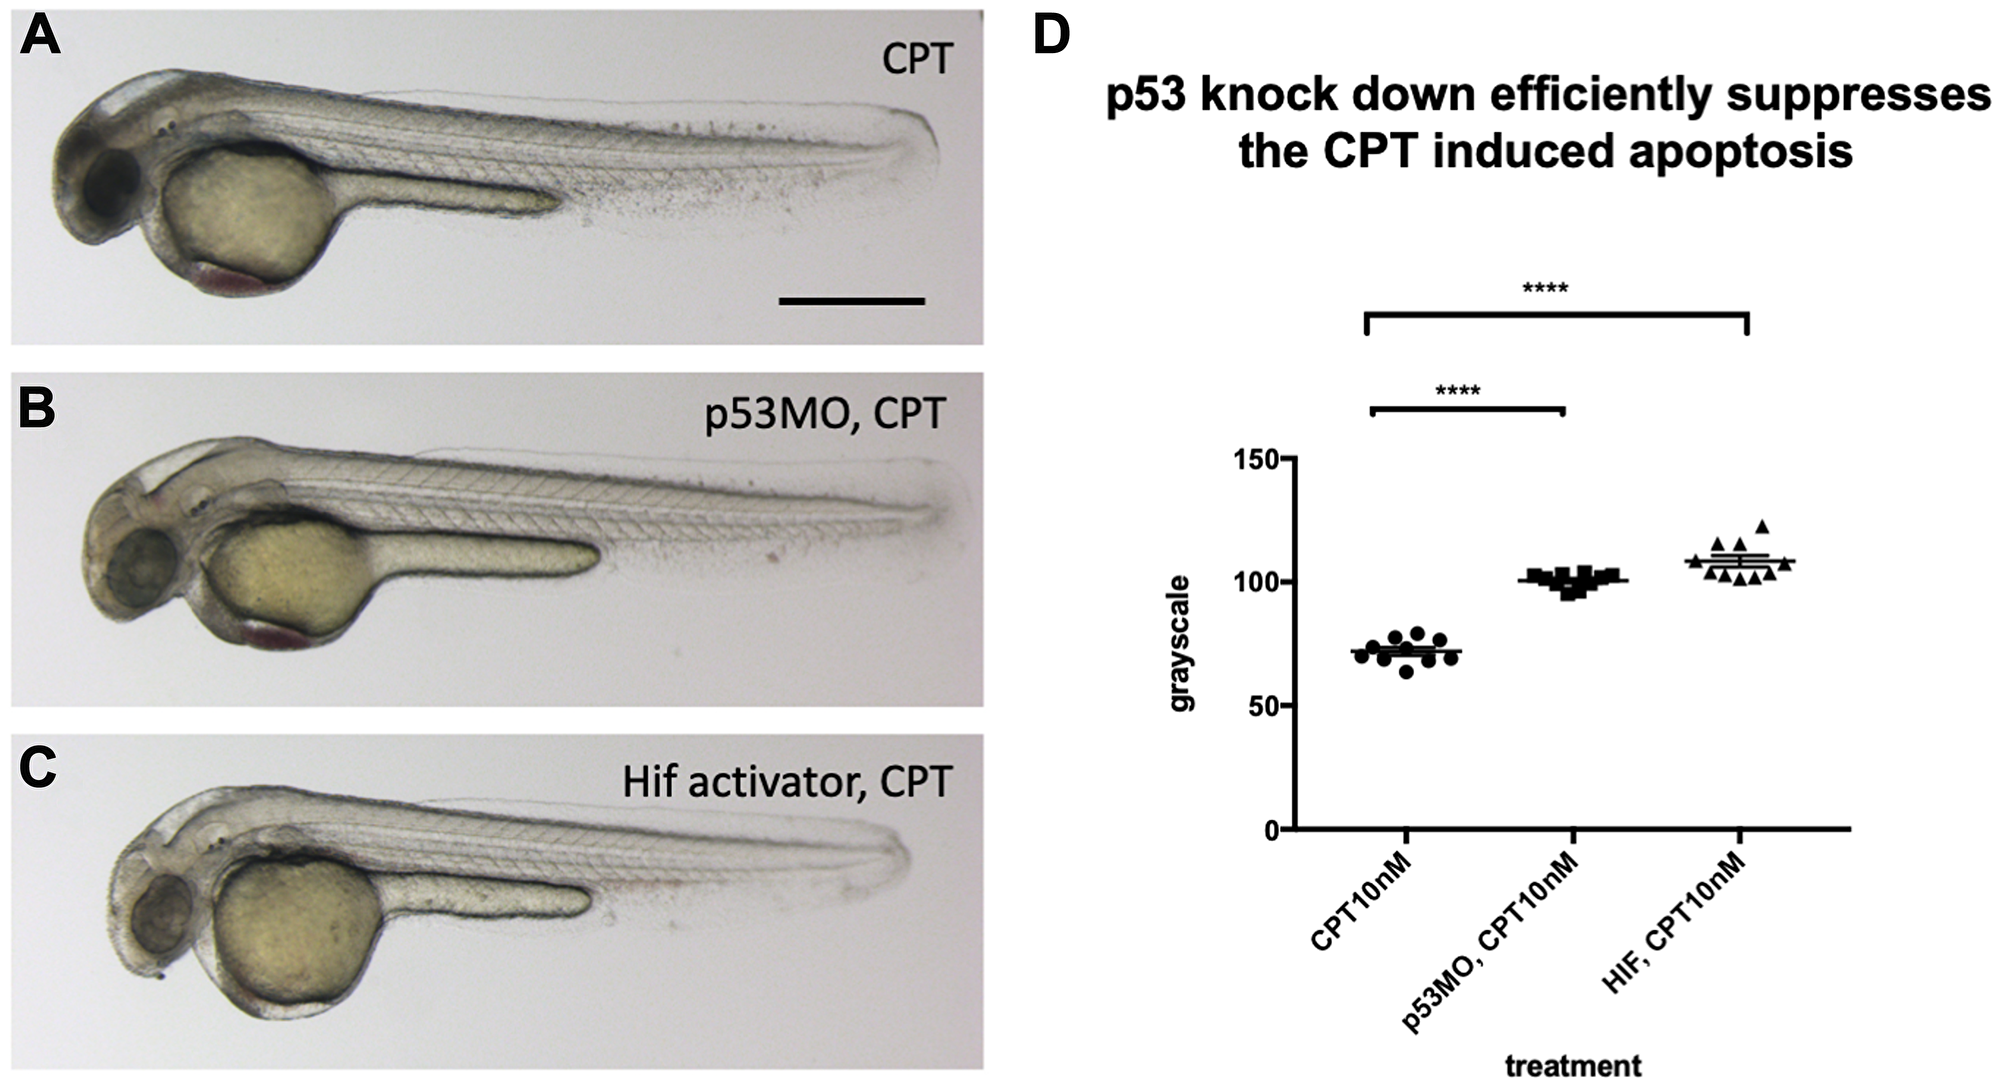 p53 knock down by p53 morpholino injection protects embryos from CPT induced apoptosis.